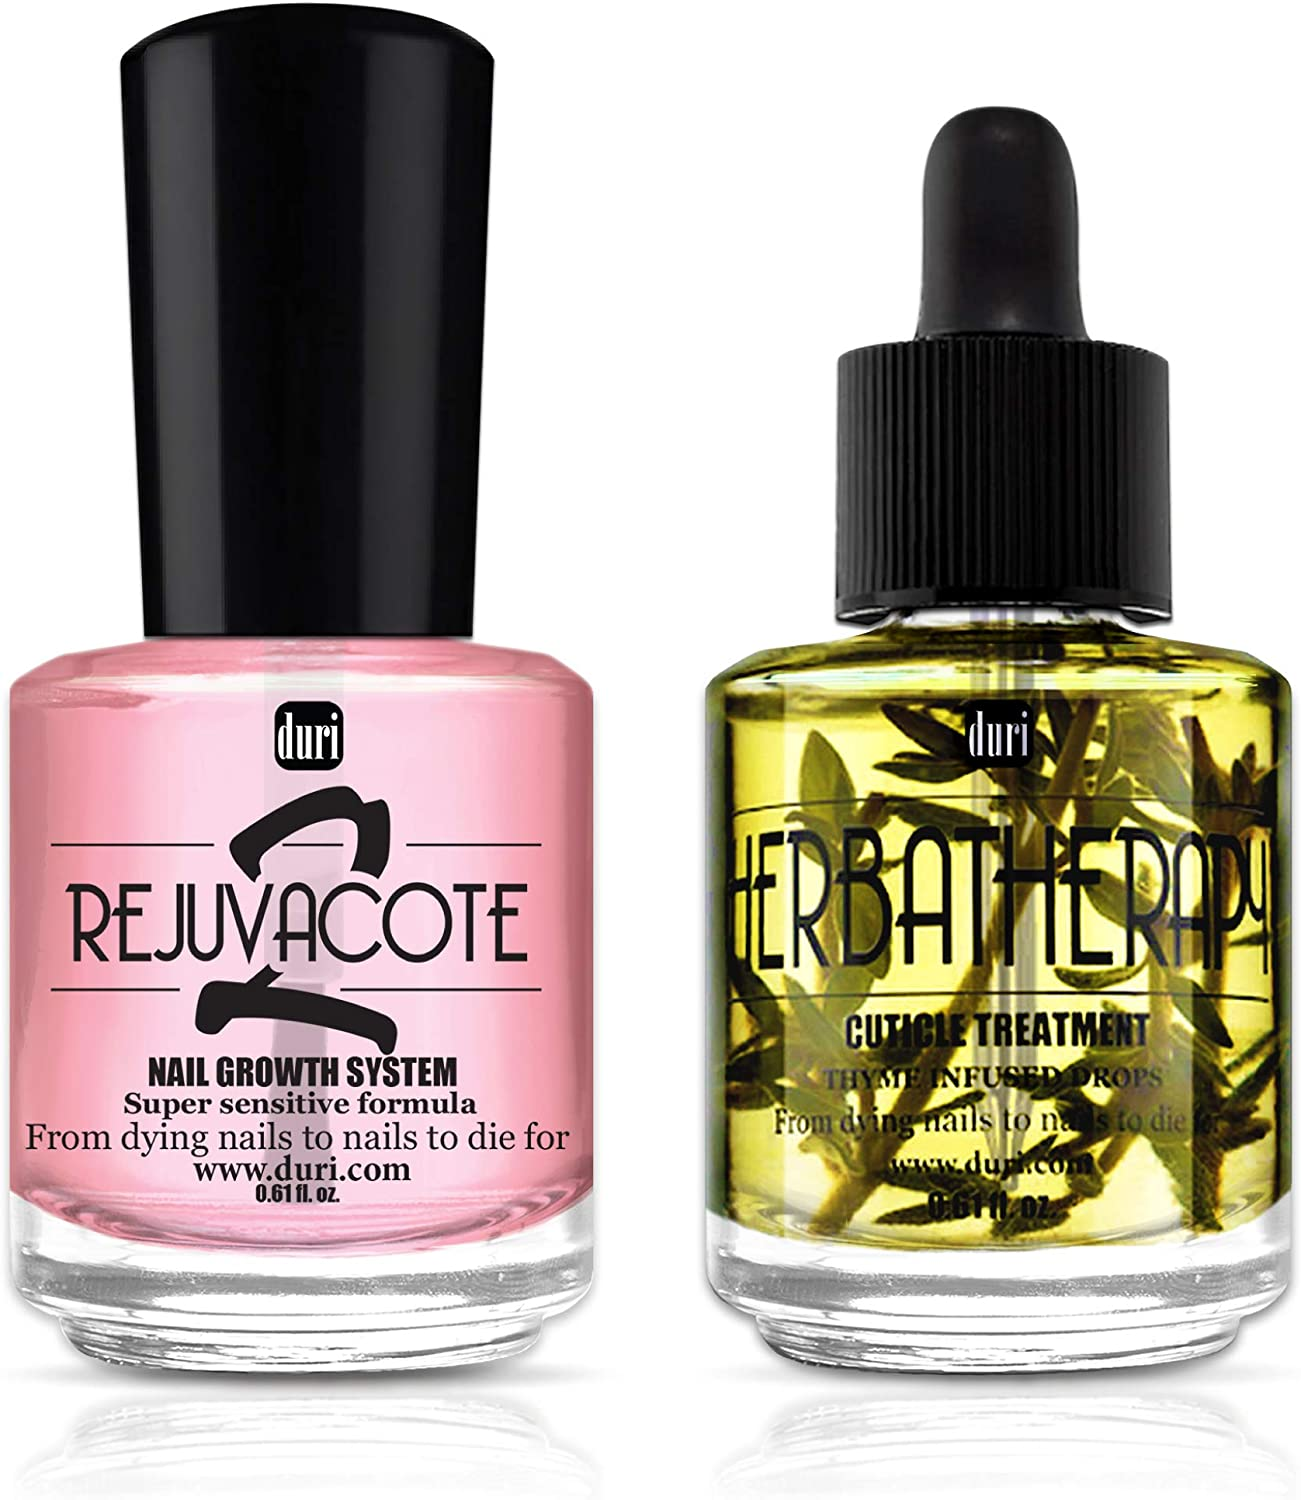 duri 100% quality warranty! Rejuvacote 2 Nail Growth System Top Coat Gorgeous Herbathe Base and